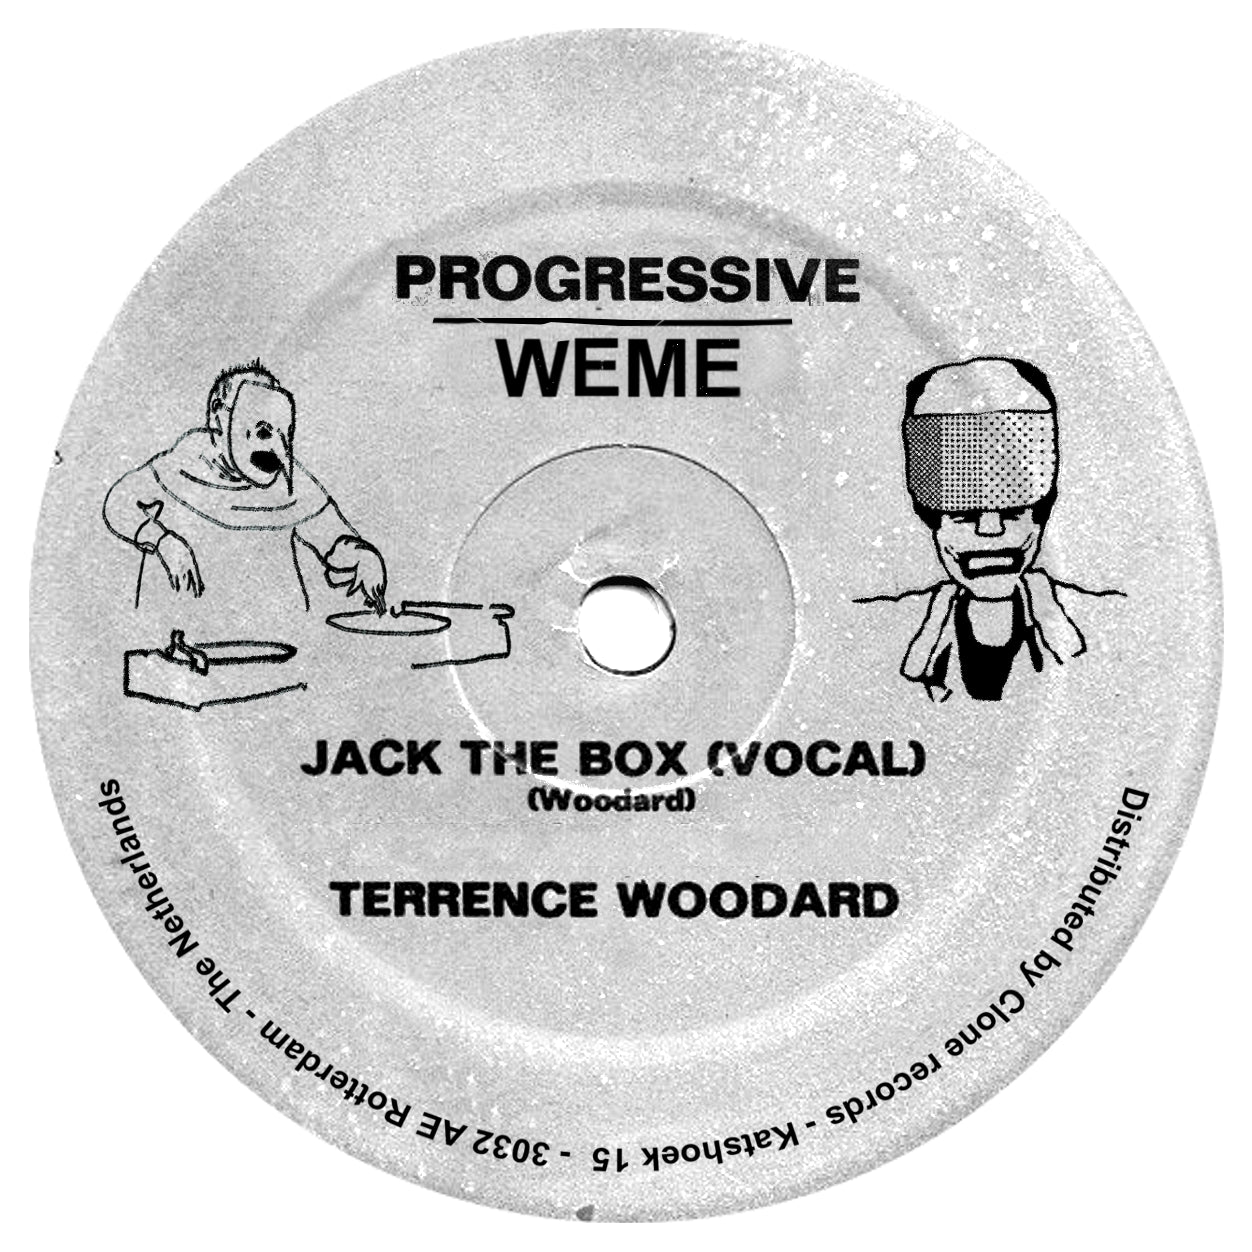 Terrence Woodard - Jack The Box